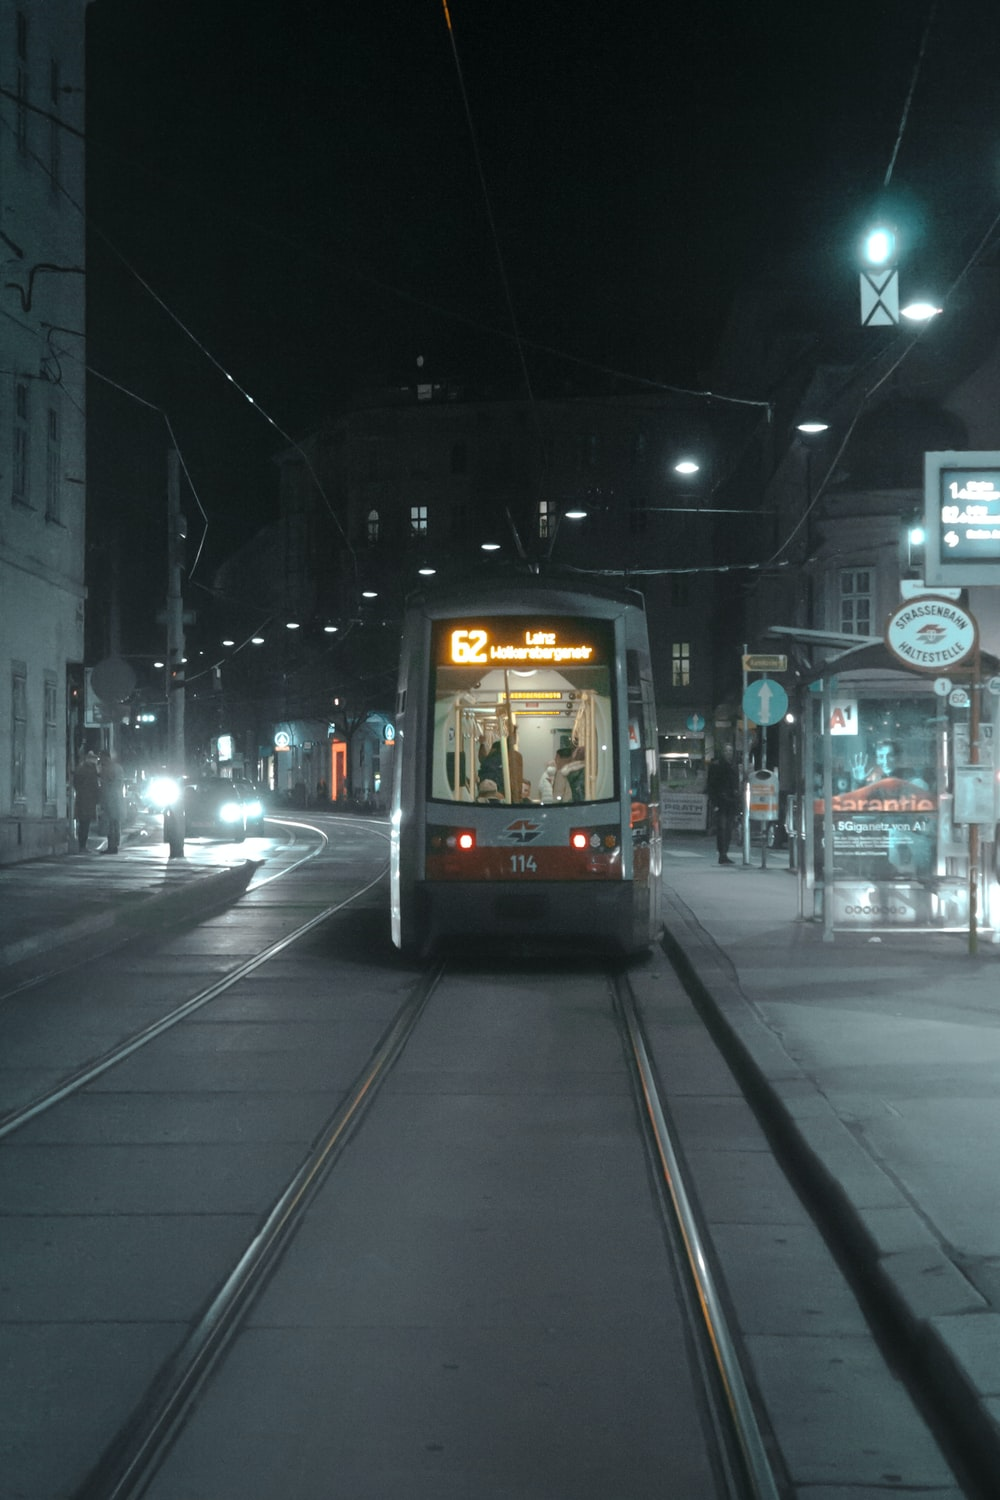 black and white tram on road during night time